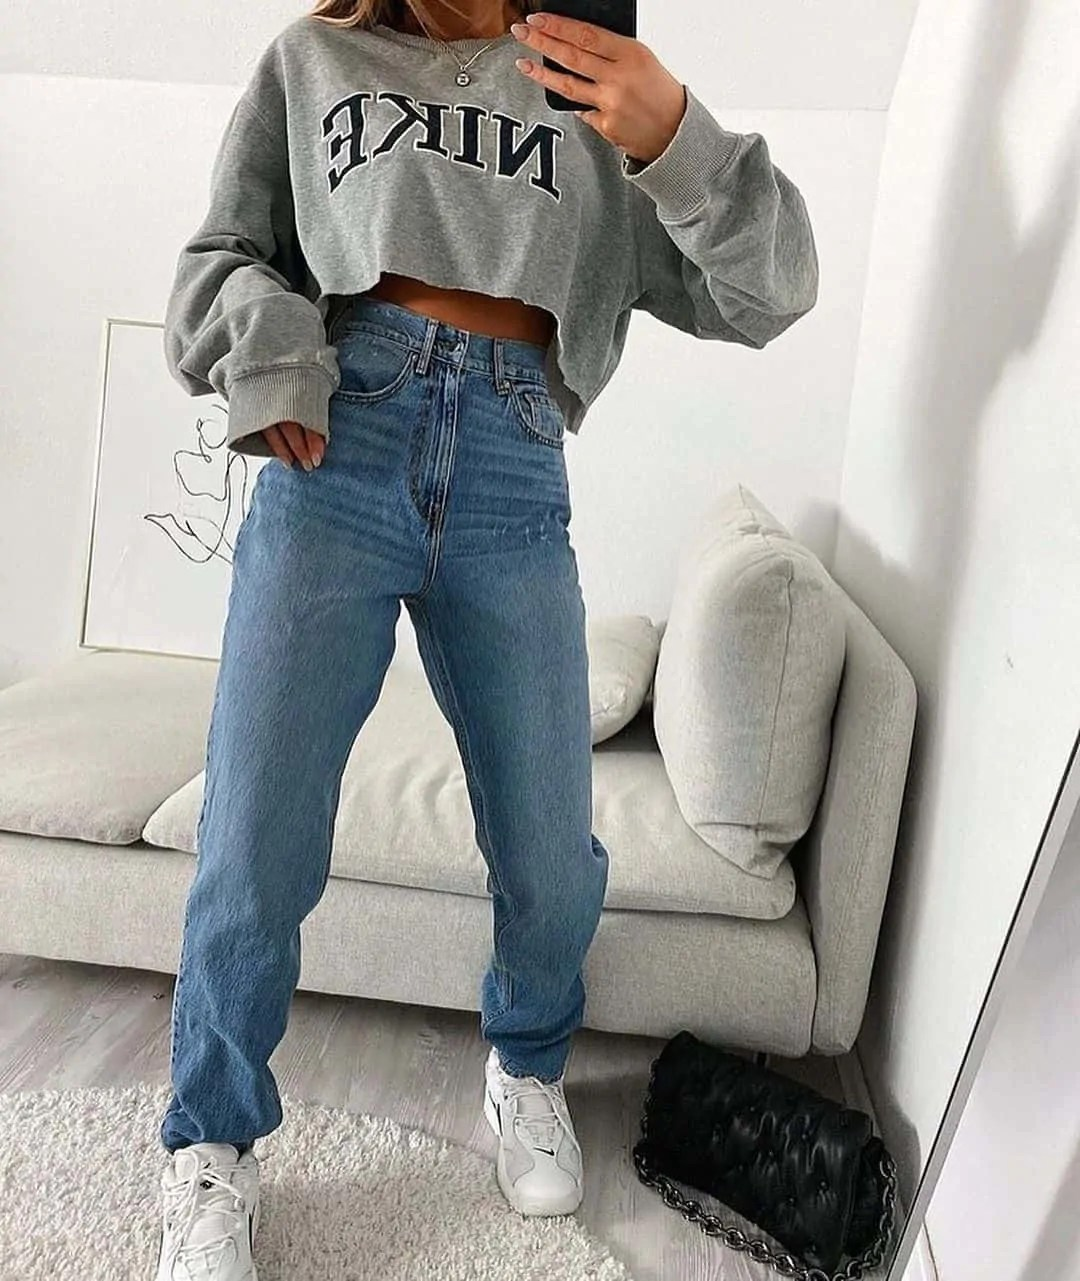 100+ fashion inspo outfits that you have to see no matter what your style is 73